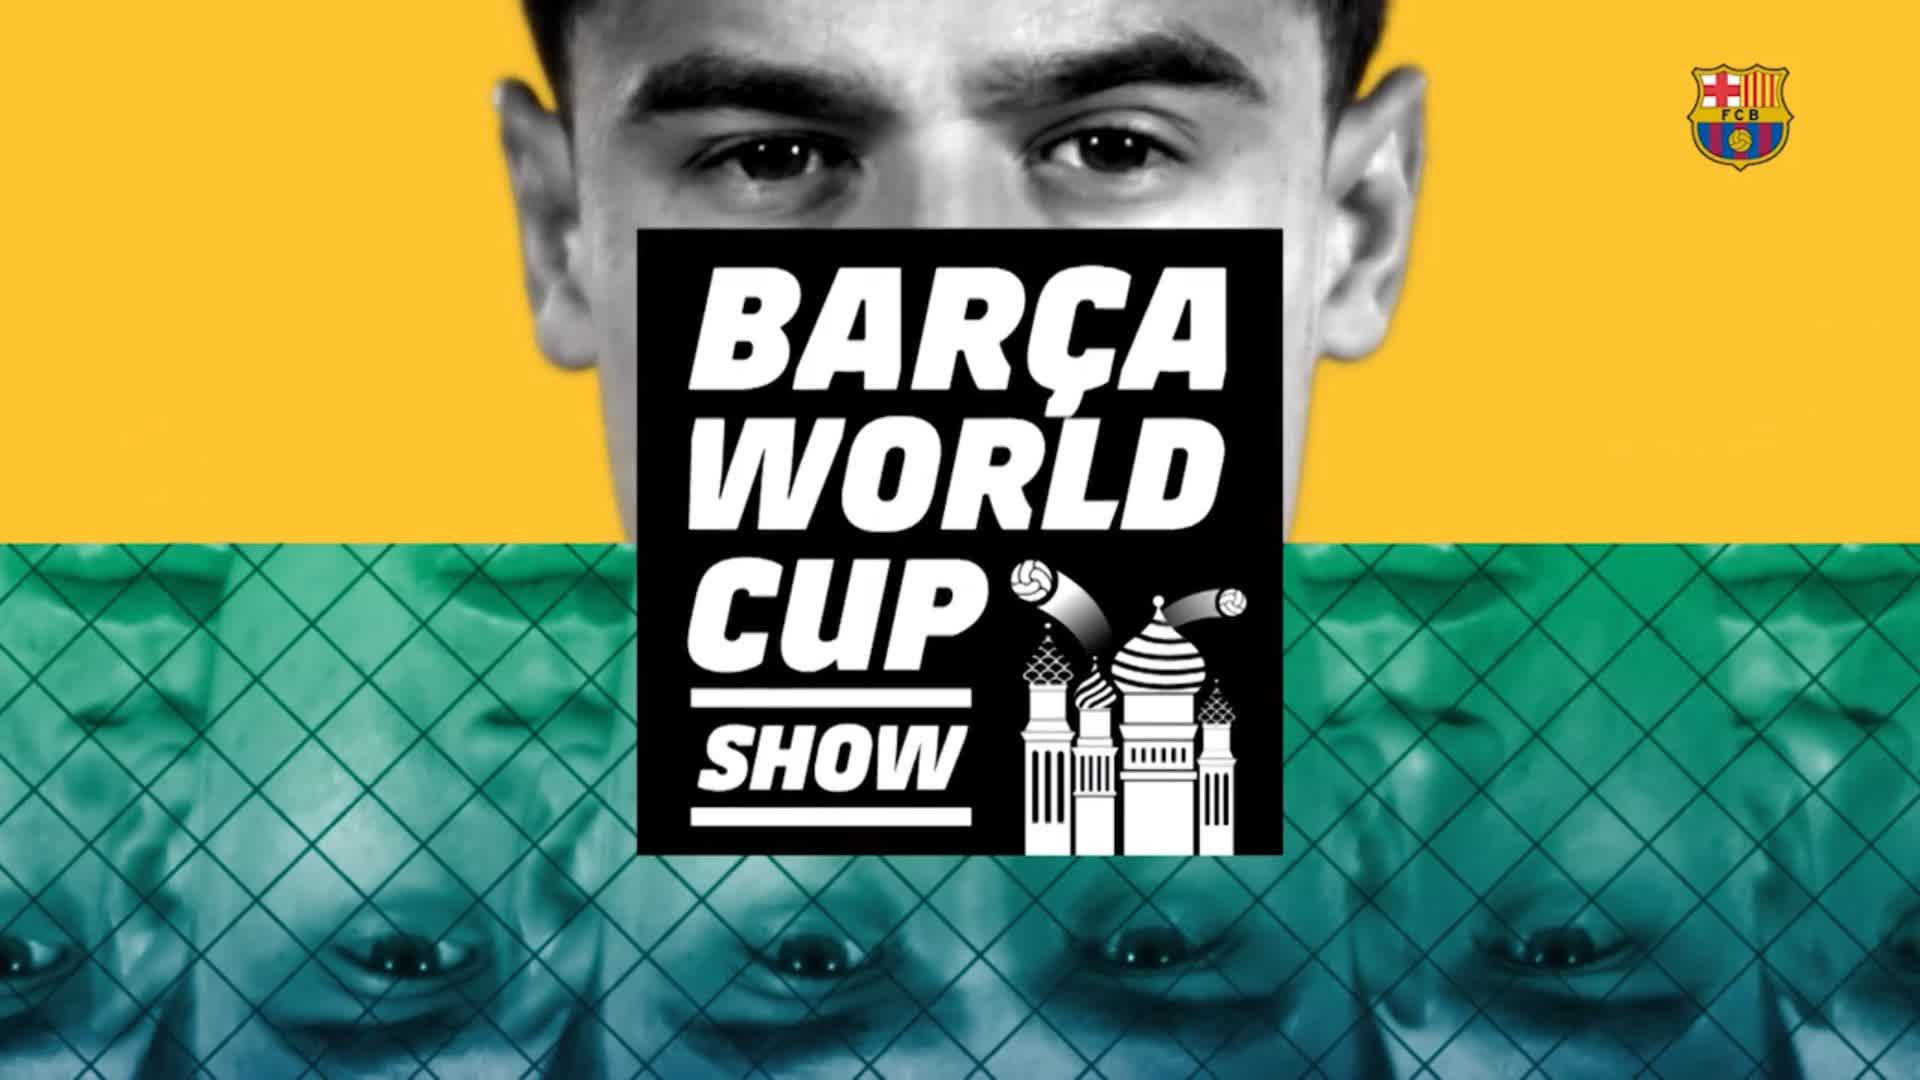 �� A group-by-group guide to our #WorldCup stars, courtesy of the #BarçaWorld Cup Show! https://t.co/RSER2lfrM8